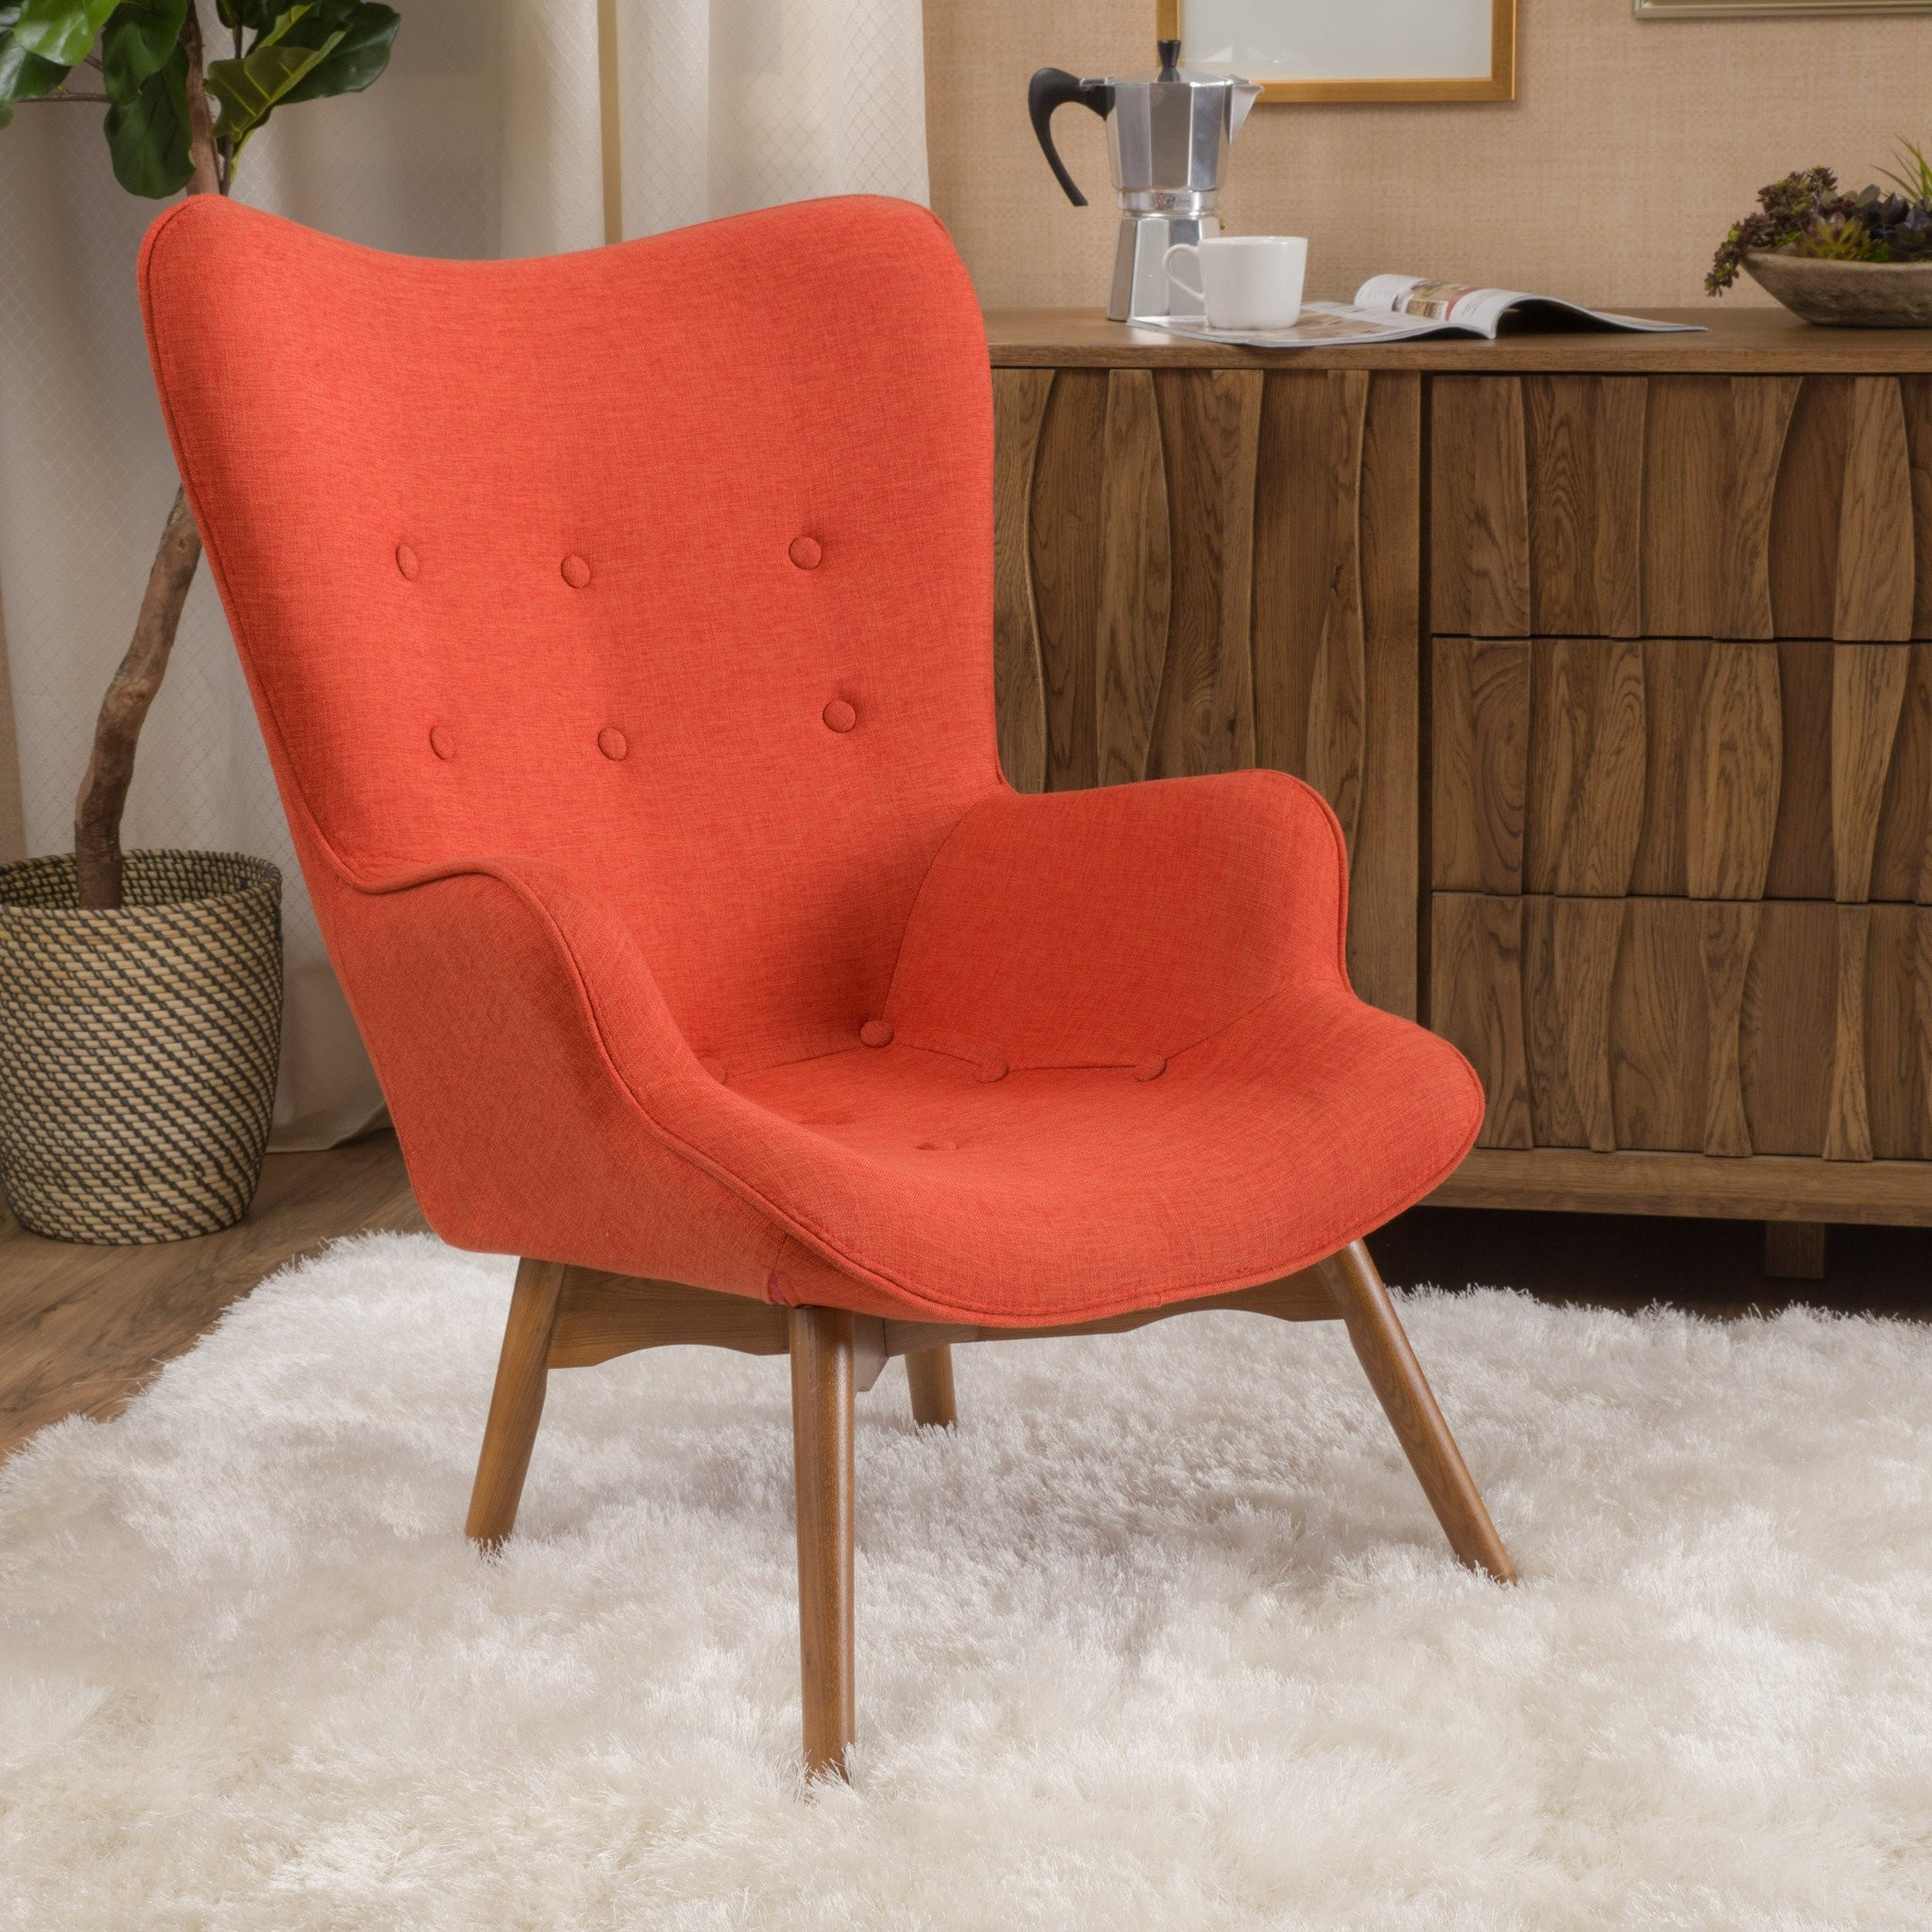 Acantha Mid Century Modern Contour Lounge Chair